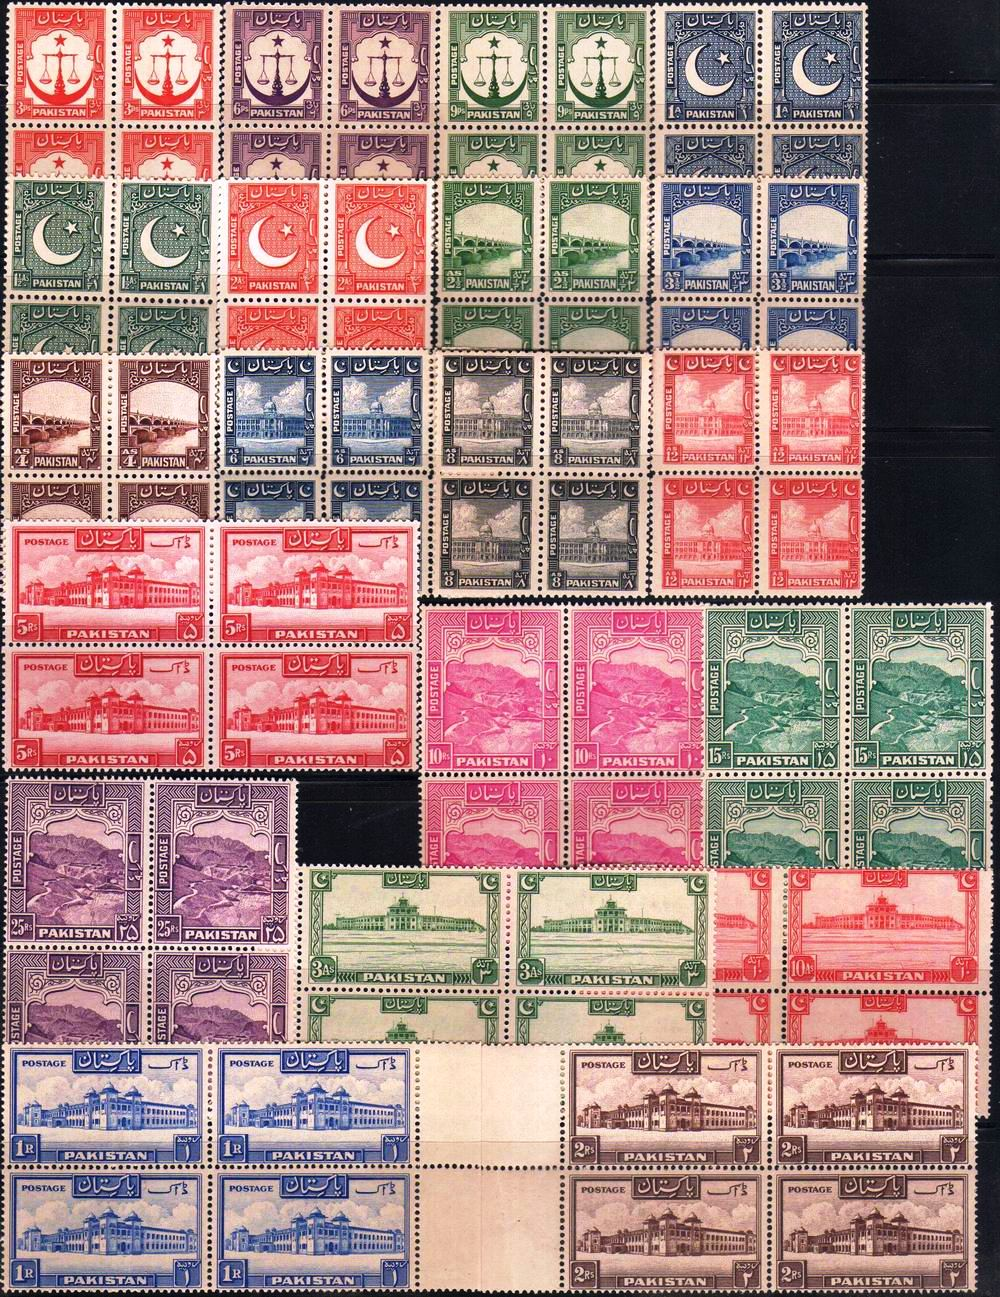 Pakistan Stamps Set 1948 Old Moon Complete Set Of 20 Stamps